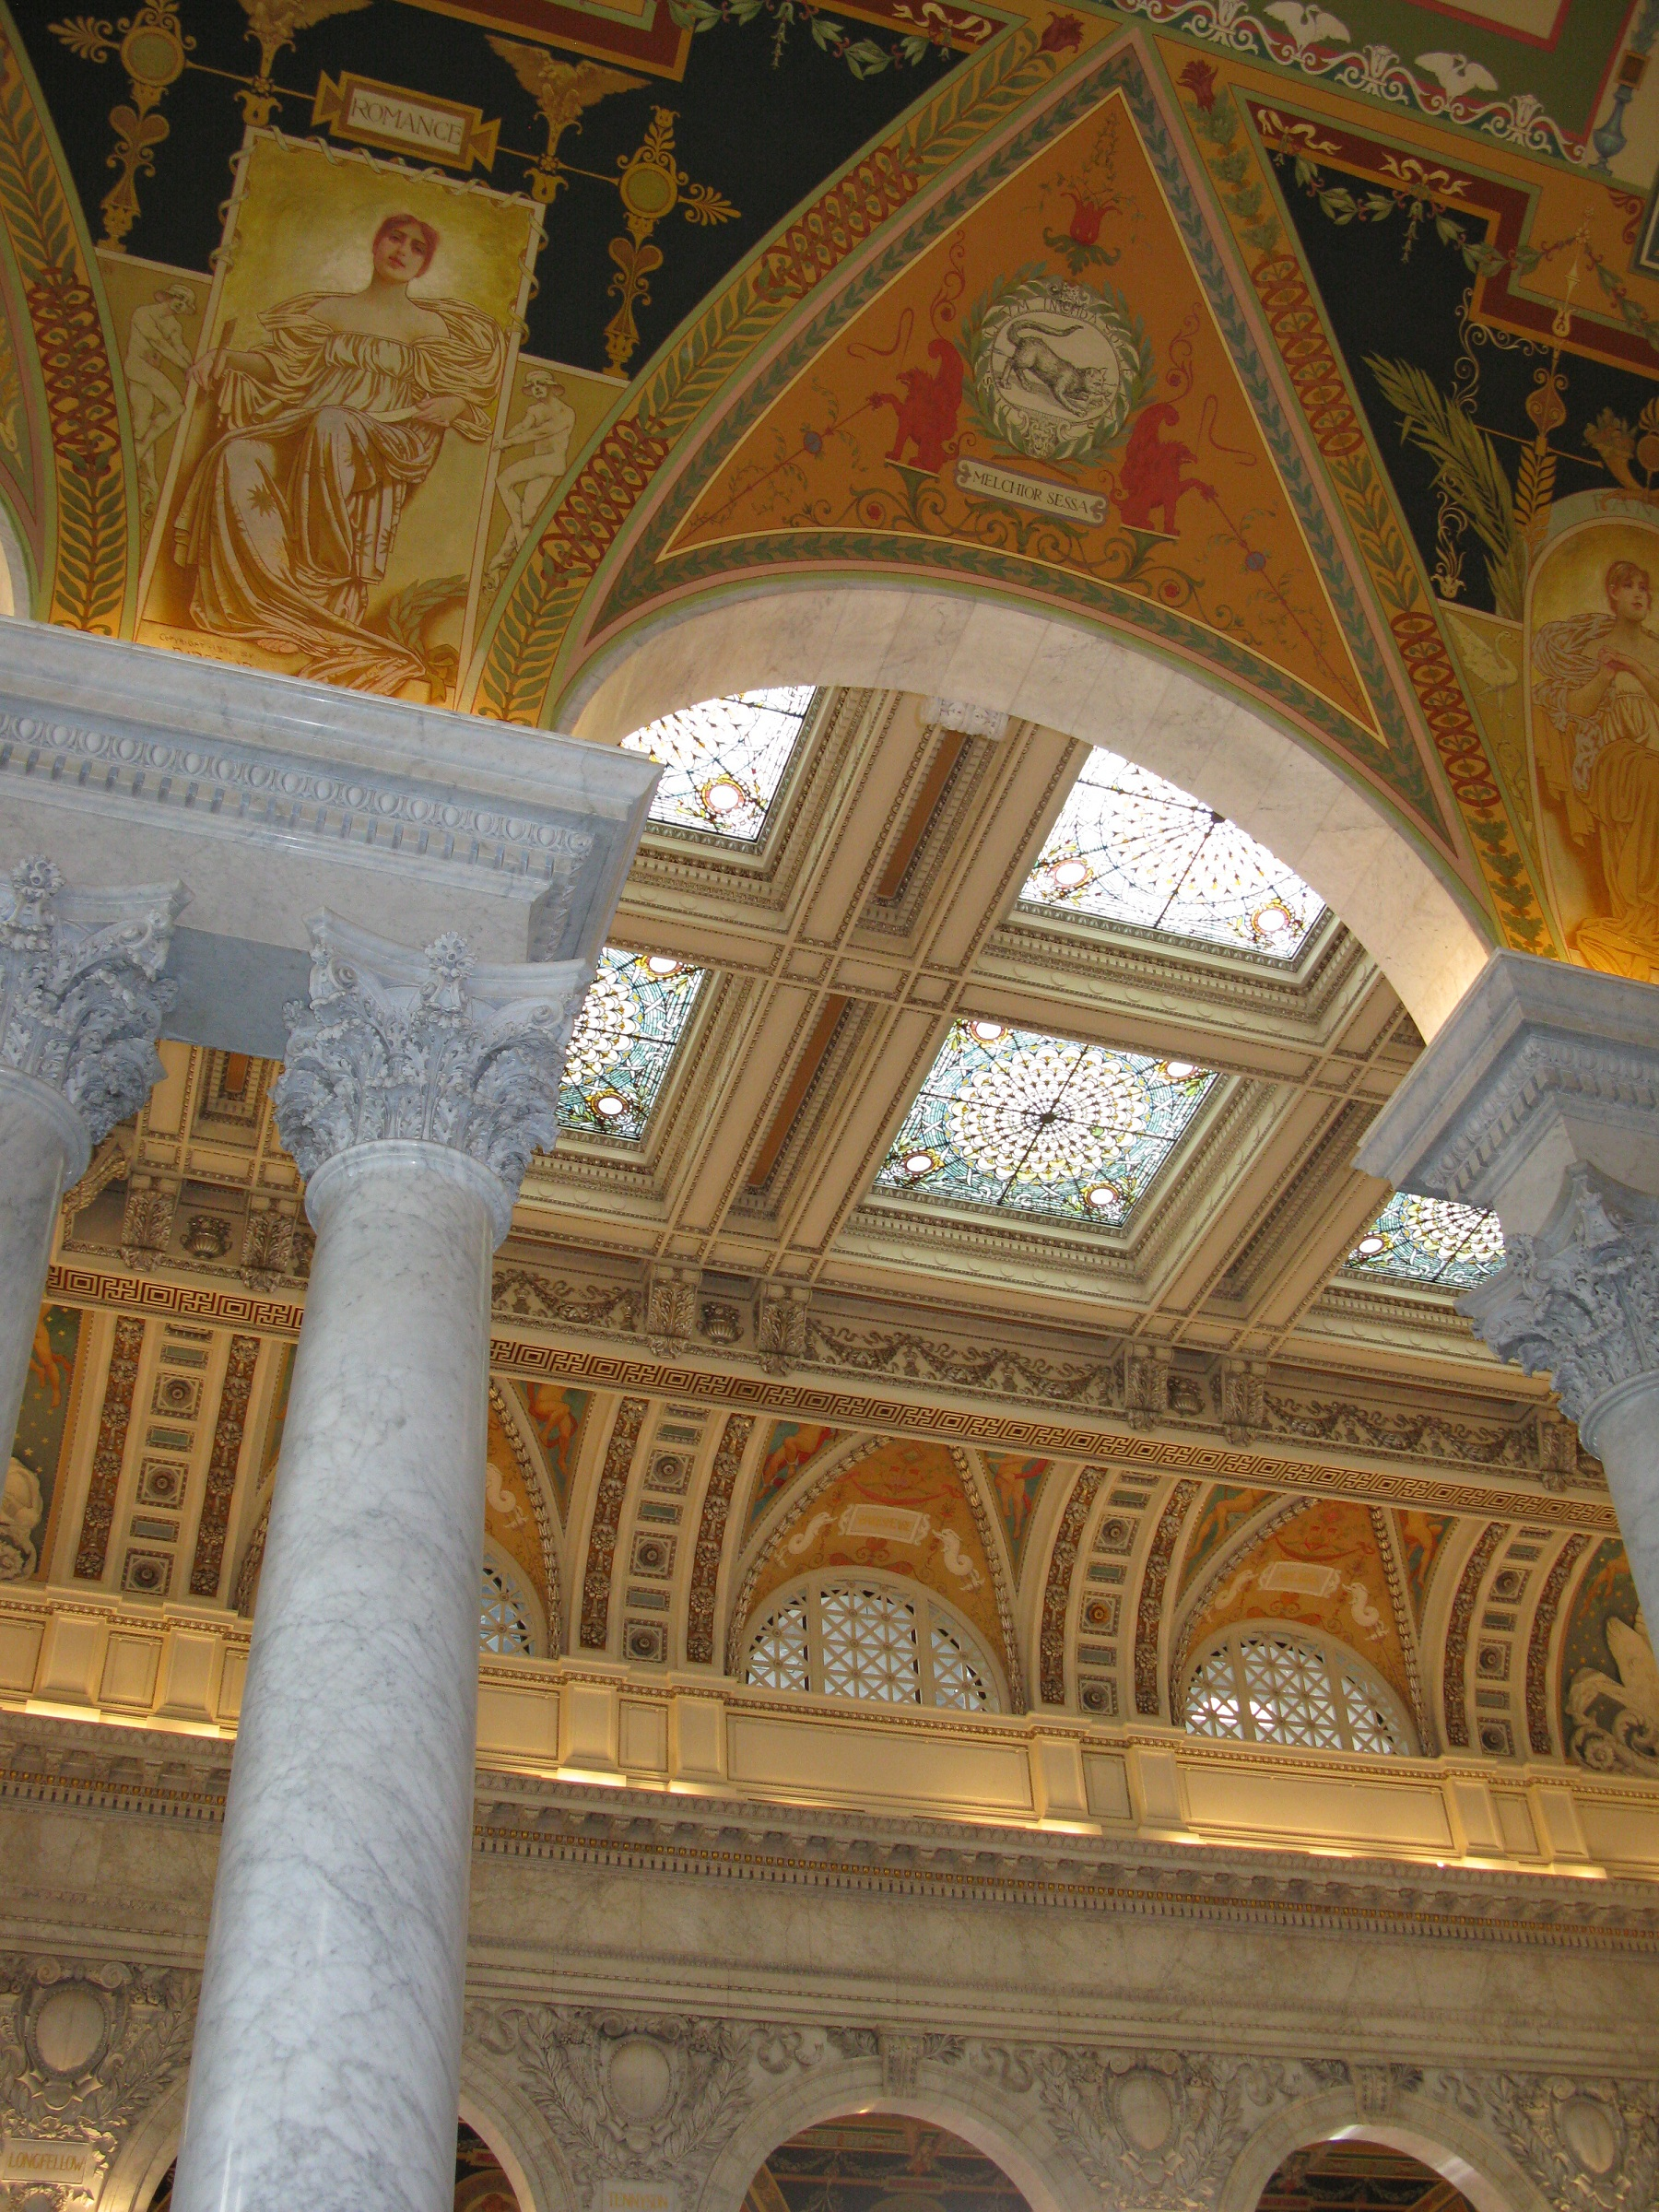 Library of Congress ceiling, web